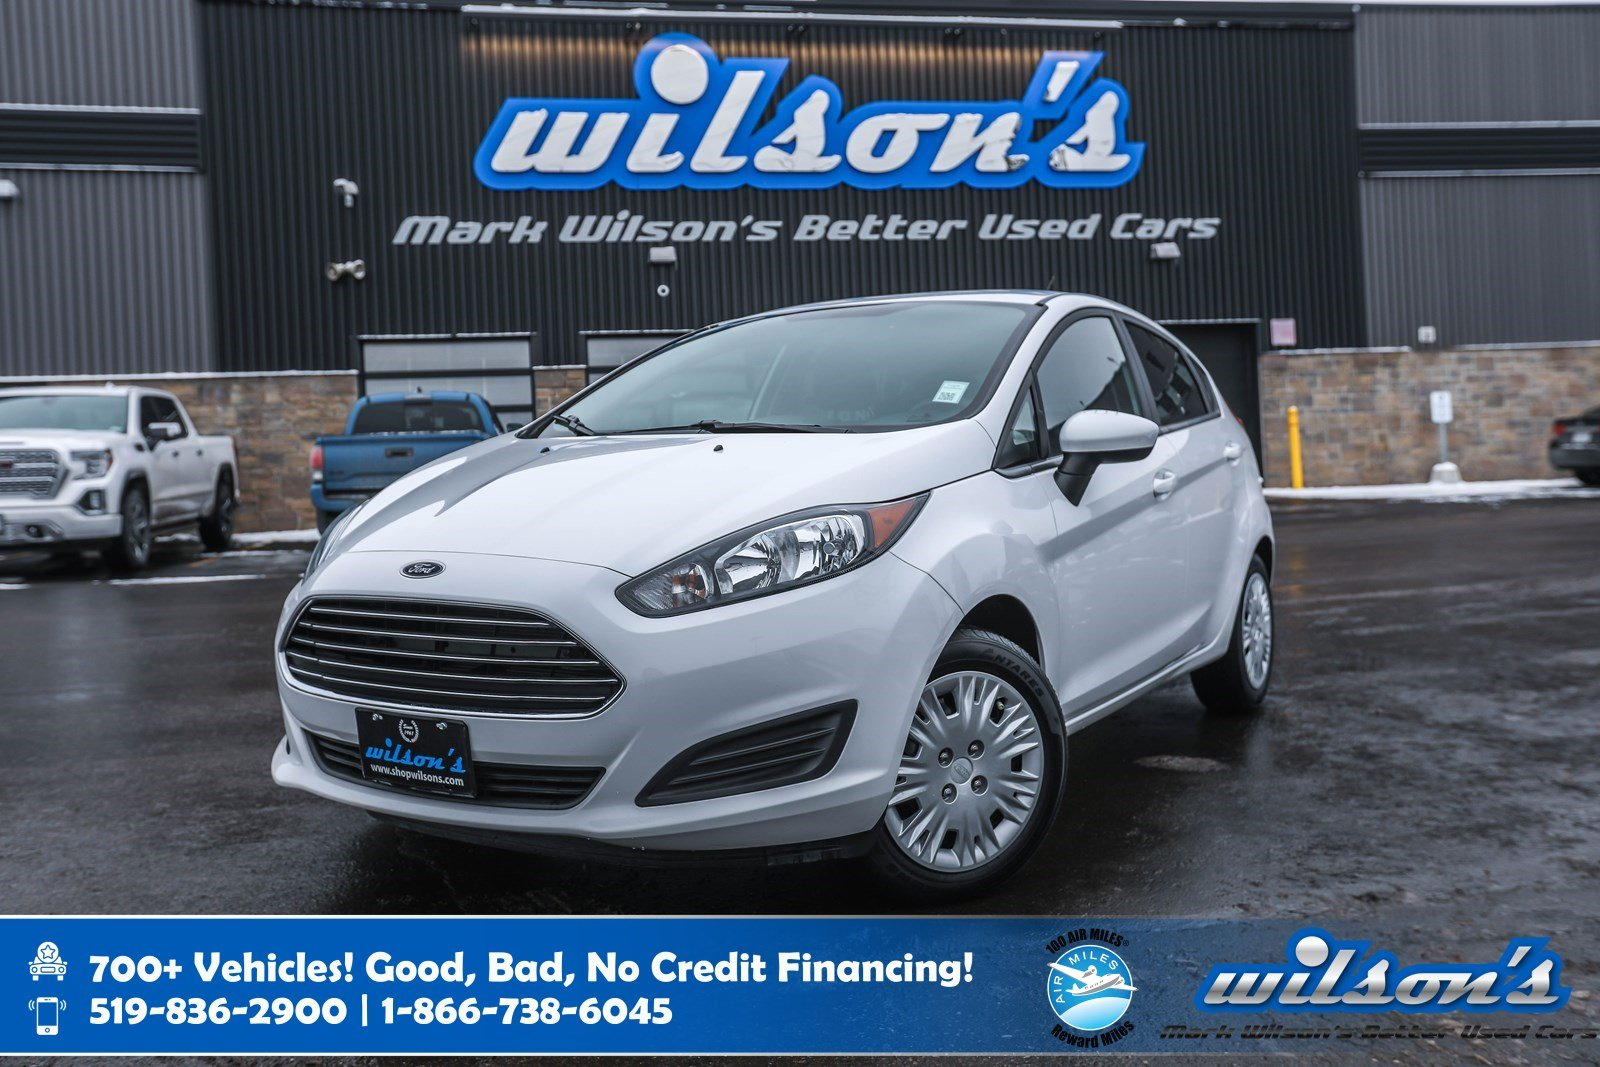 Certified Pre-Owned 2017 Ford Fiesta S Hatchback, 5 Speed, CLEAN CARPROOF! Bluetooth, A/C, Keyless Entry